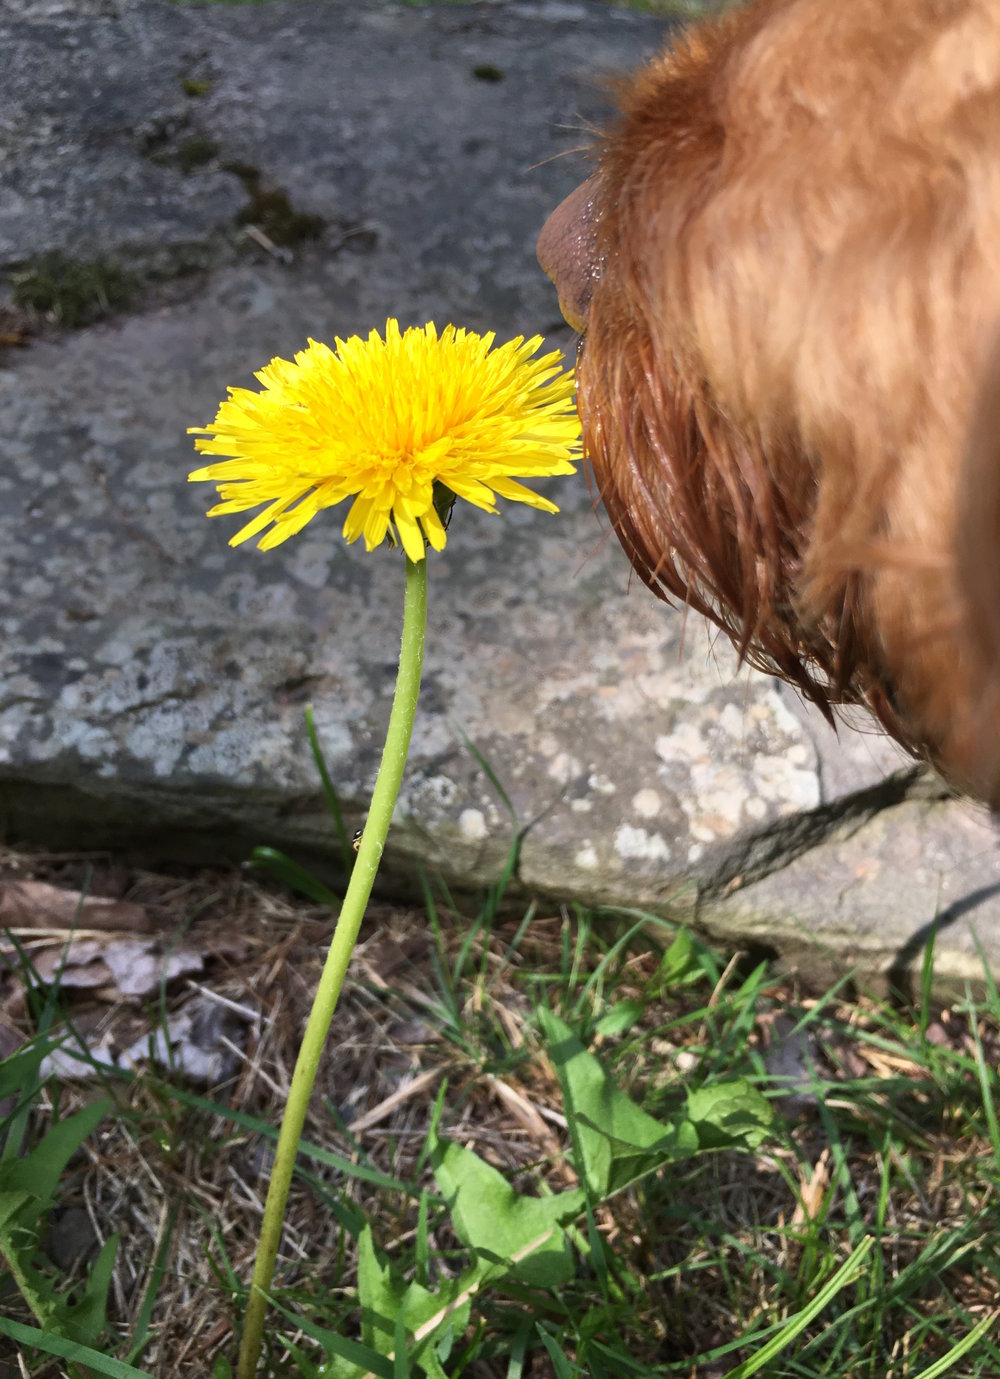 Stopping to smell the flowers - Or weeds, more precisely